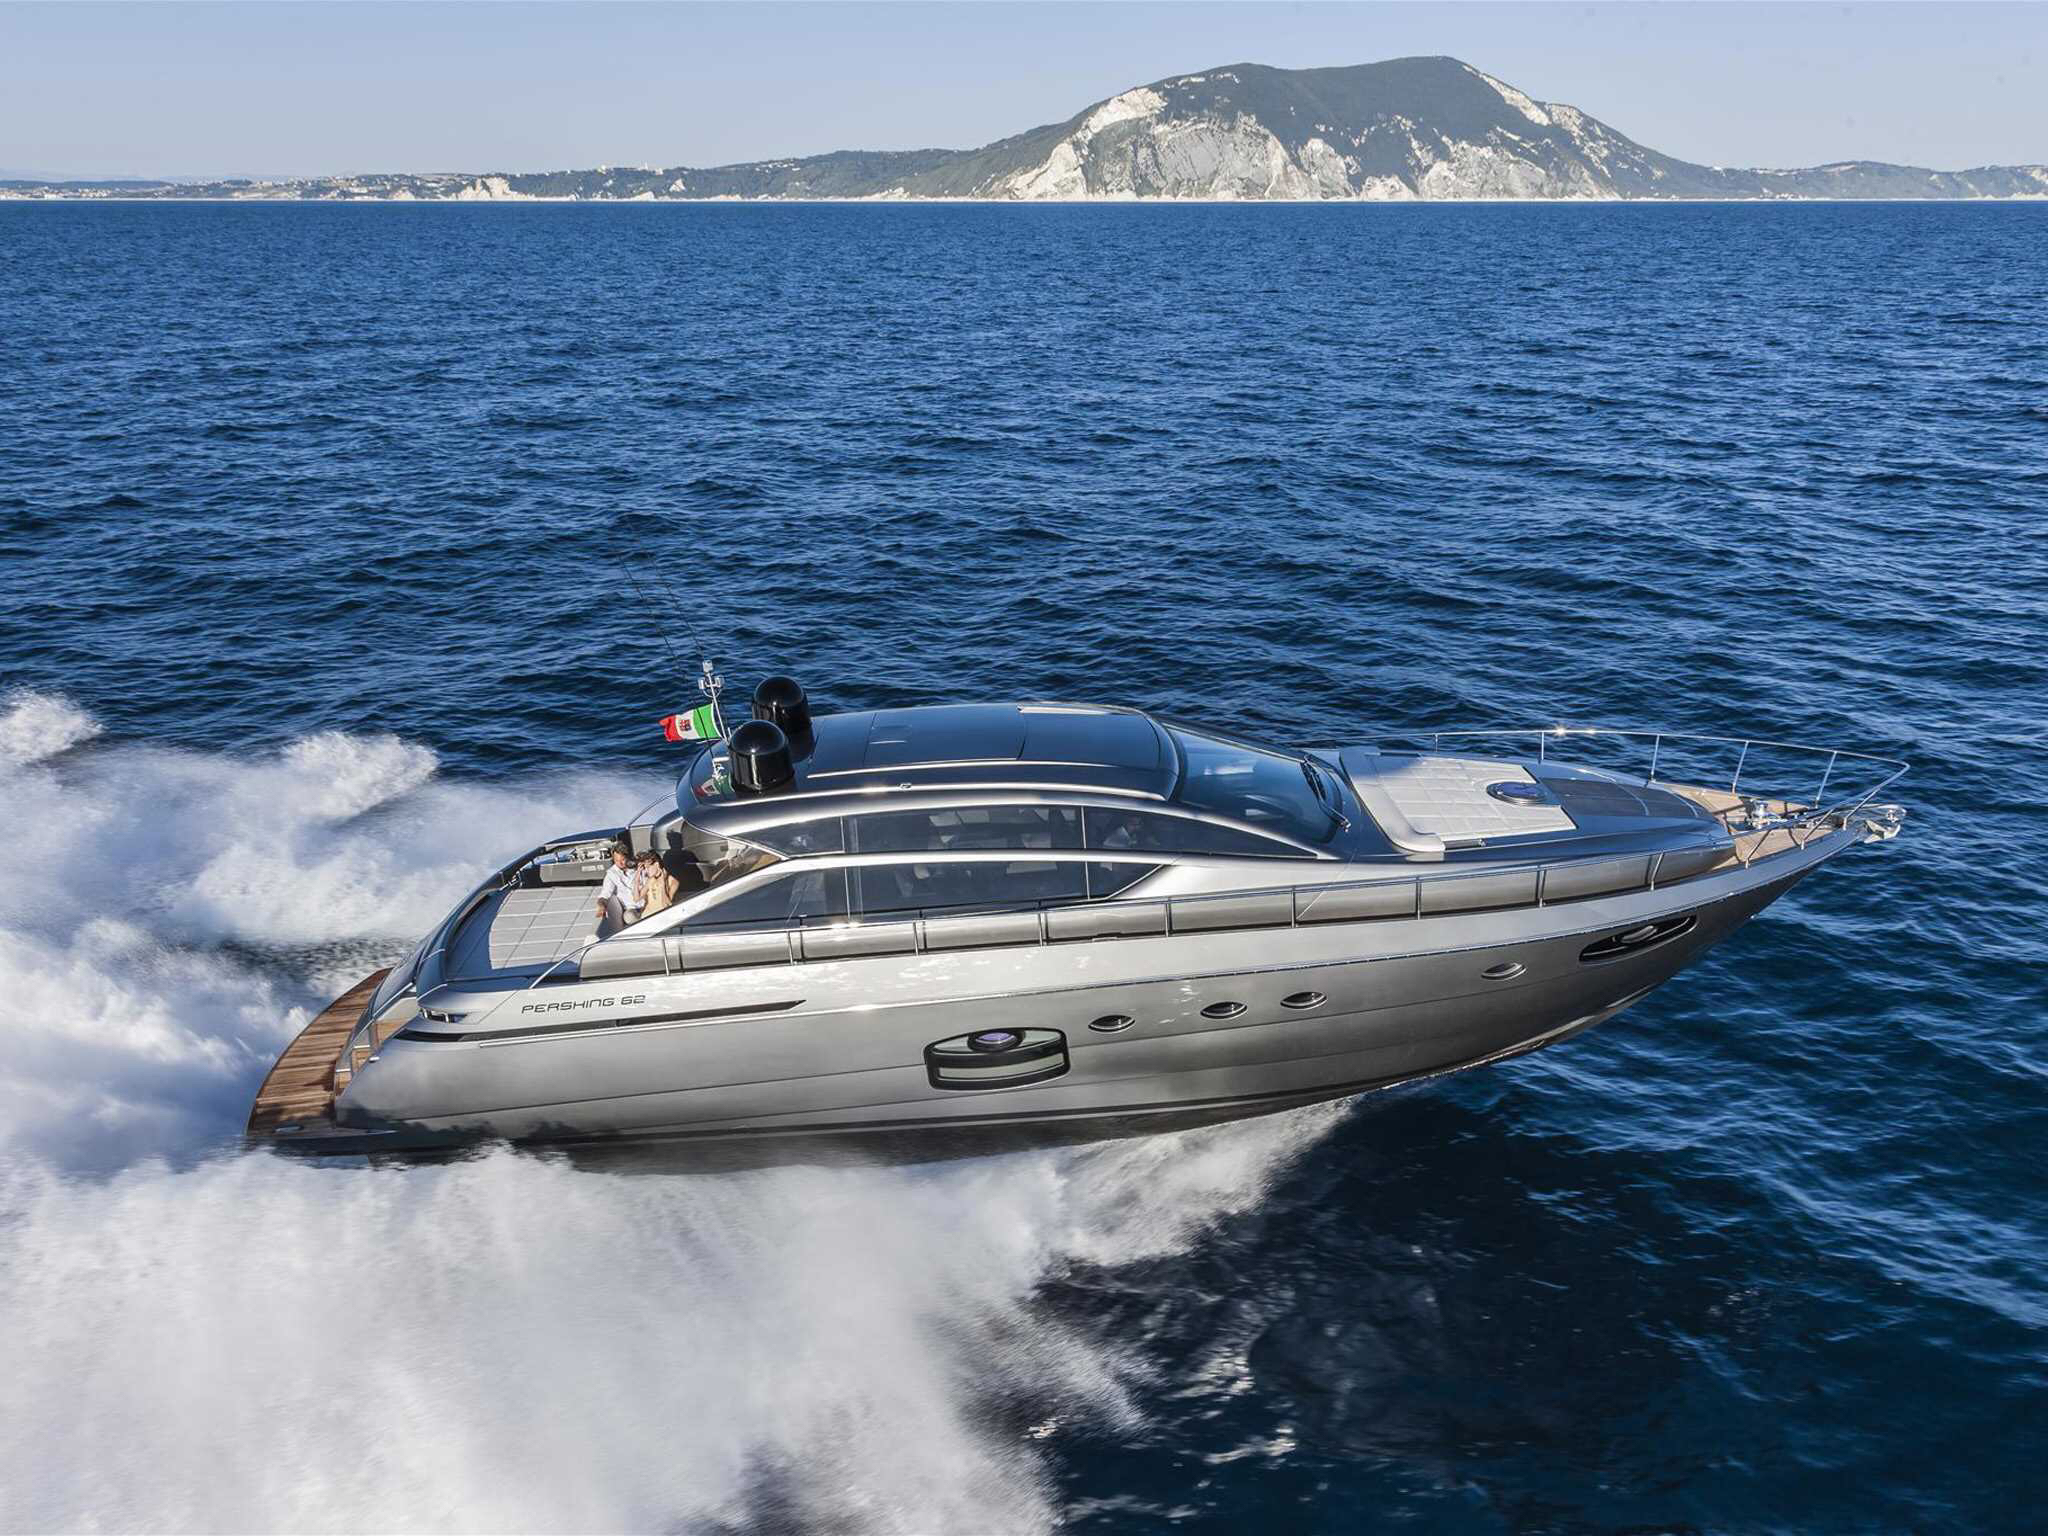 ferretti yachts ferretti group pershing yachts pershing 62 JMA Yachting Port Fréjus Var vente location neuf occasion places de p